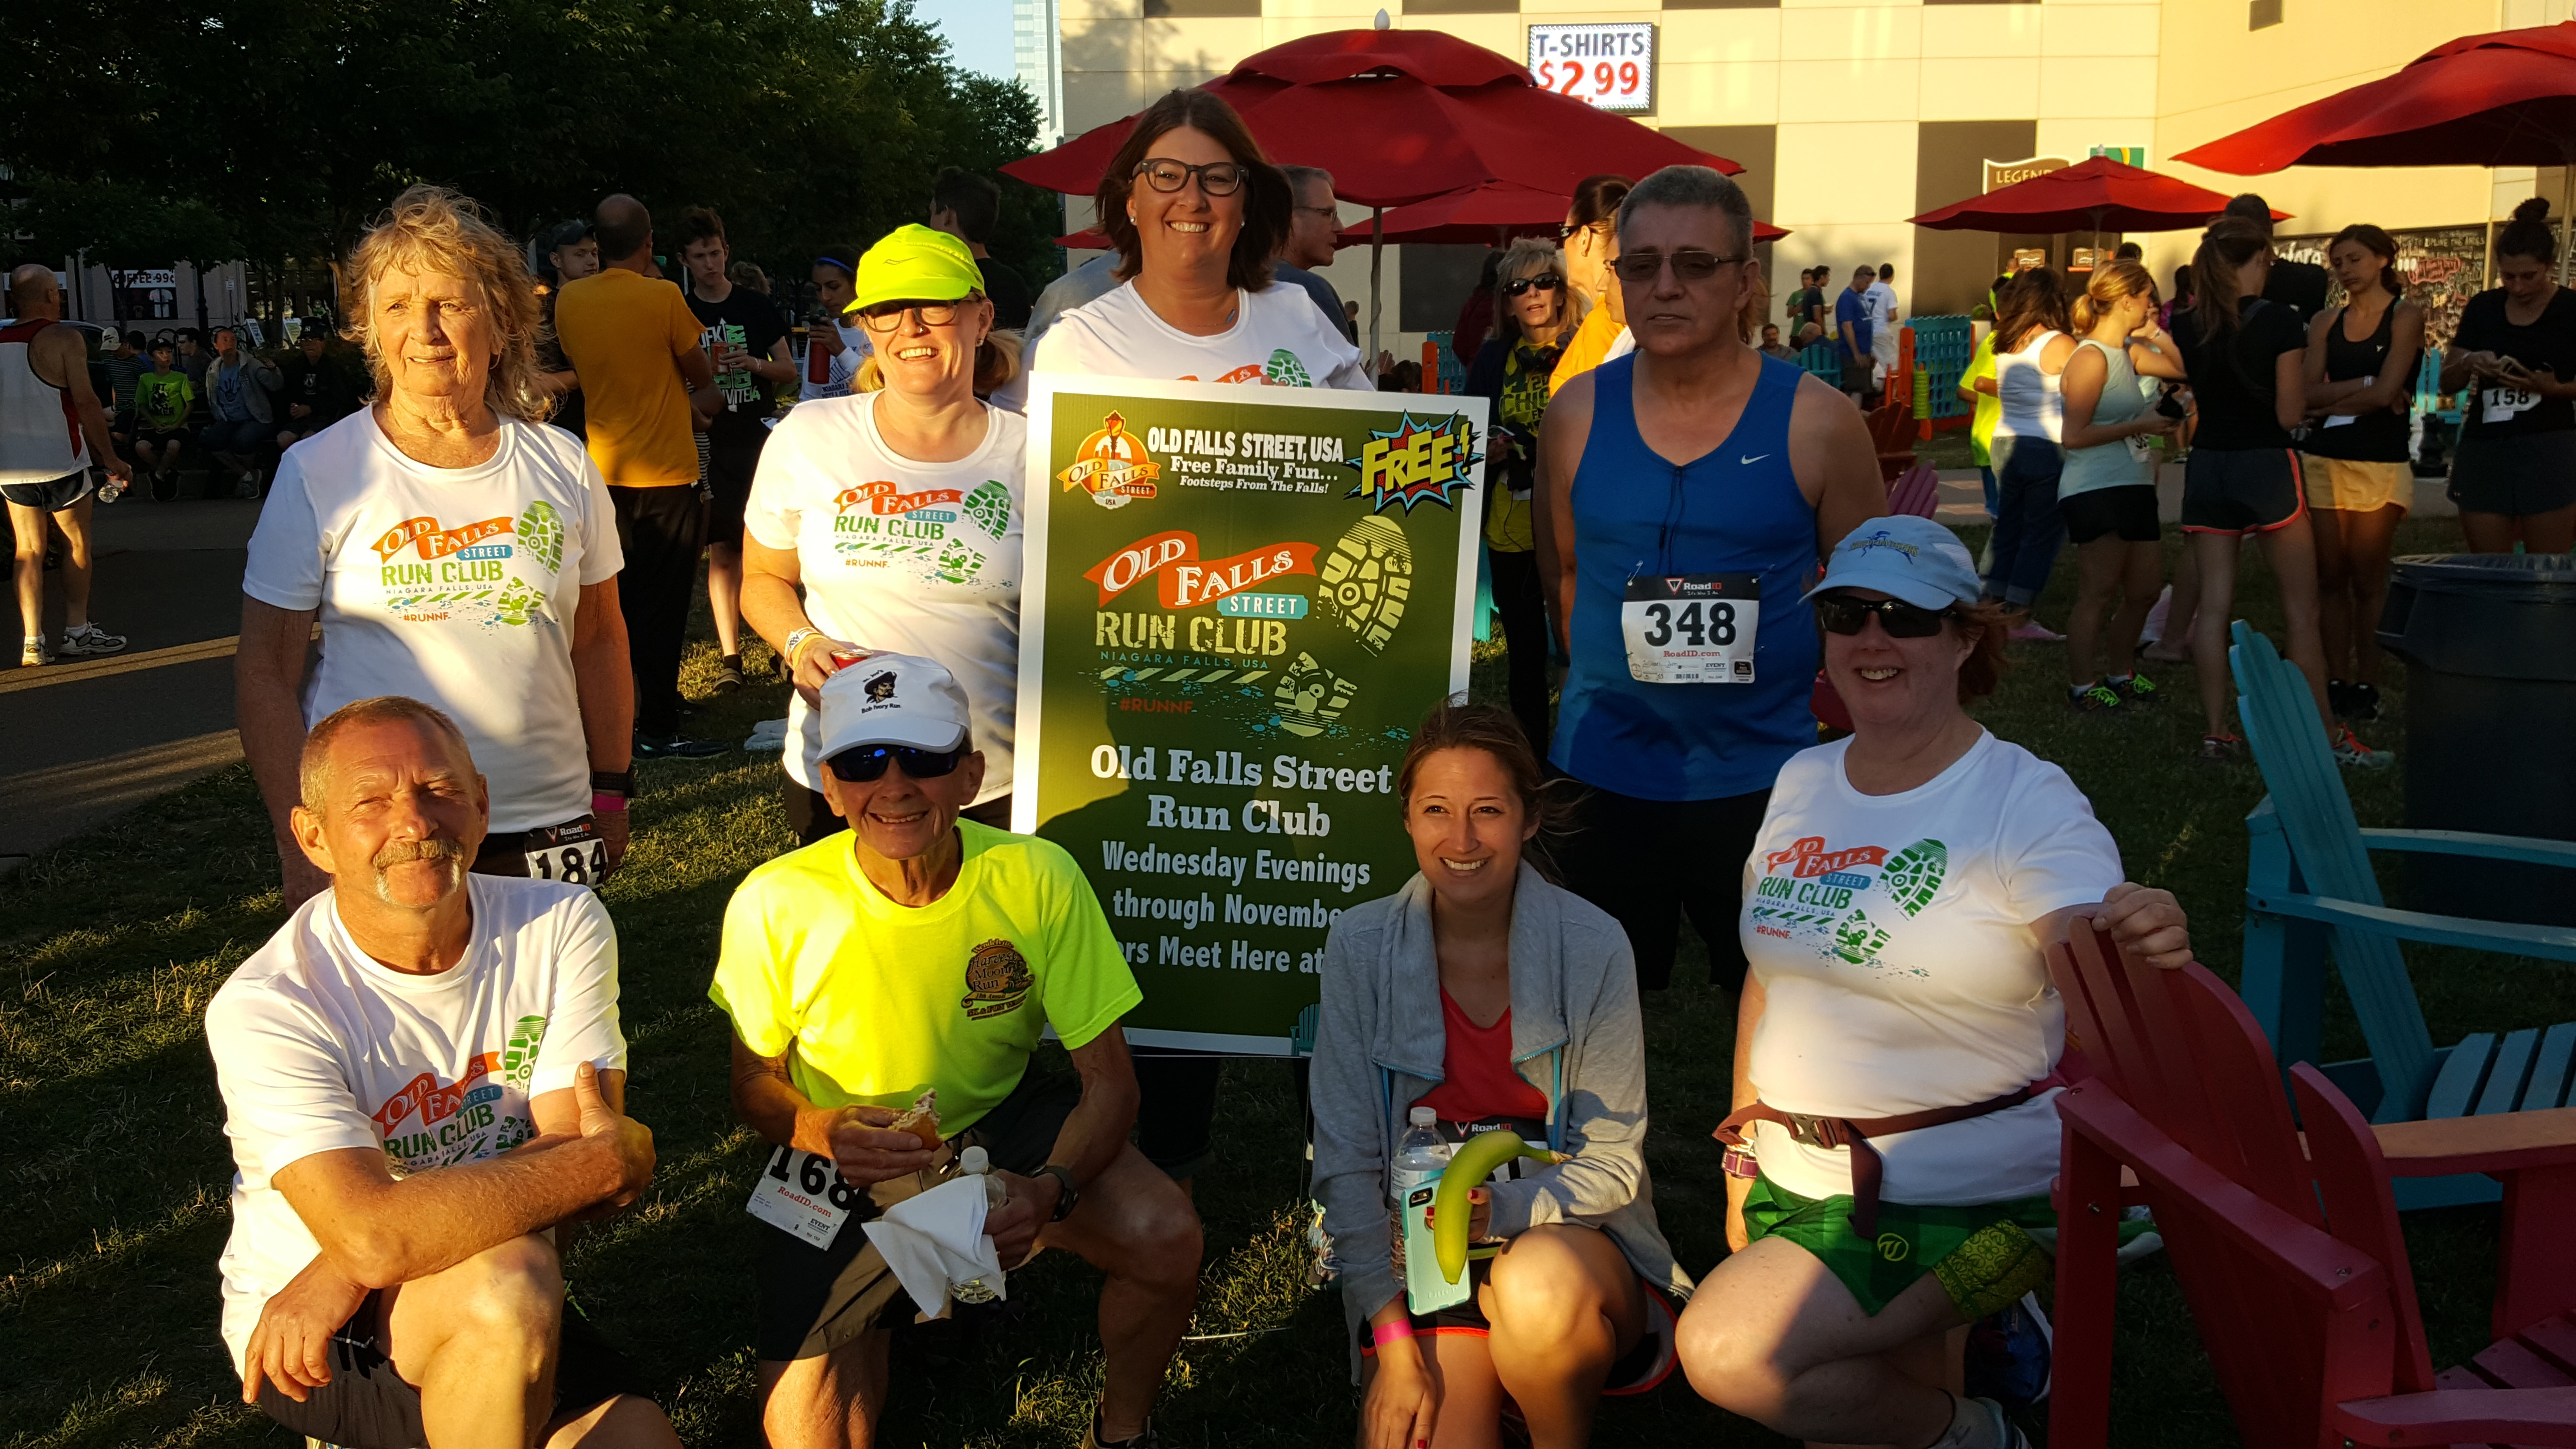 Old Falls Street Run Club stalwarts include, bottom row from left, Harvey Lewis, Jack Matheson, Angelle Phillips and Deb Meier; top row, from left, Fran Rowe, Tracey Maciejewski, Jessica Stankiewicz and Jim Sullivan.